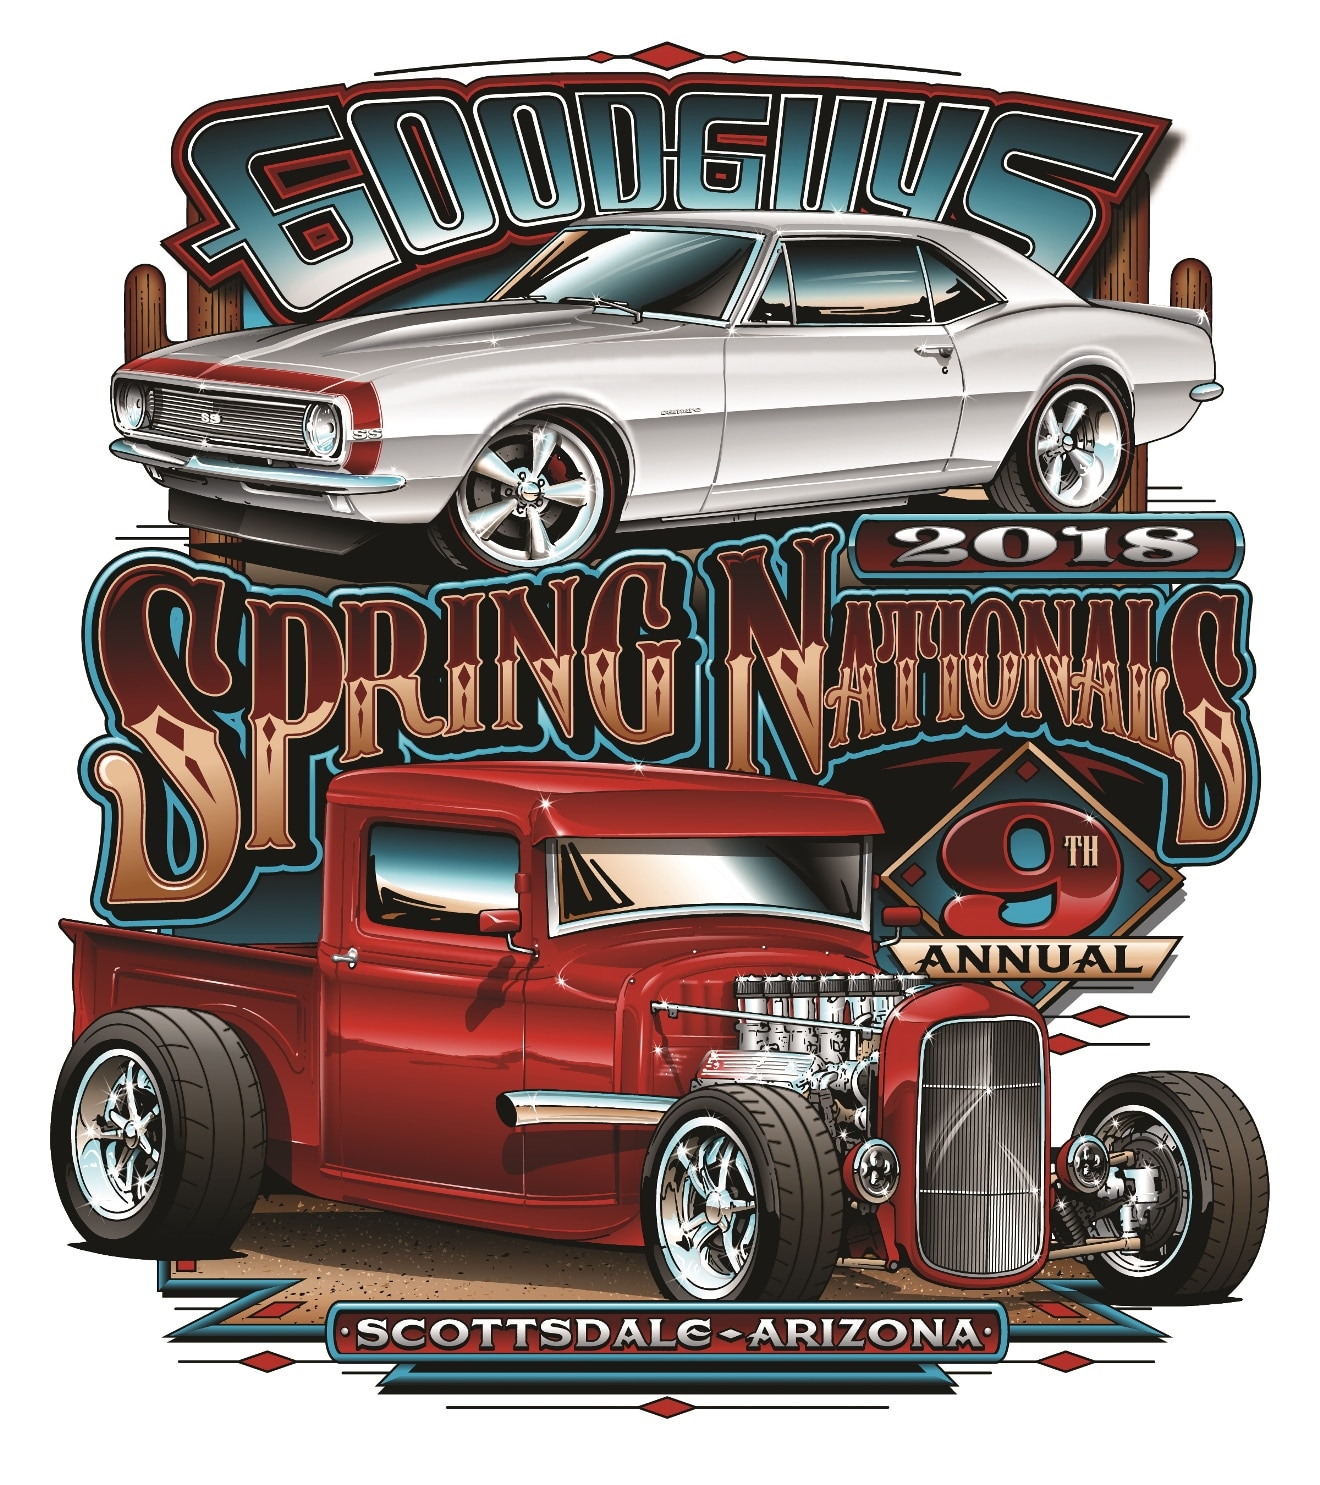 Goodguys Th Spring Nationals American Legend Wheels - When is the good guys car show in scottsdale